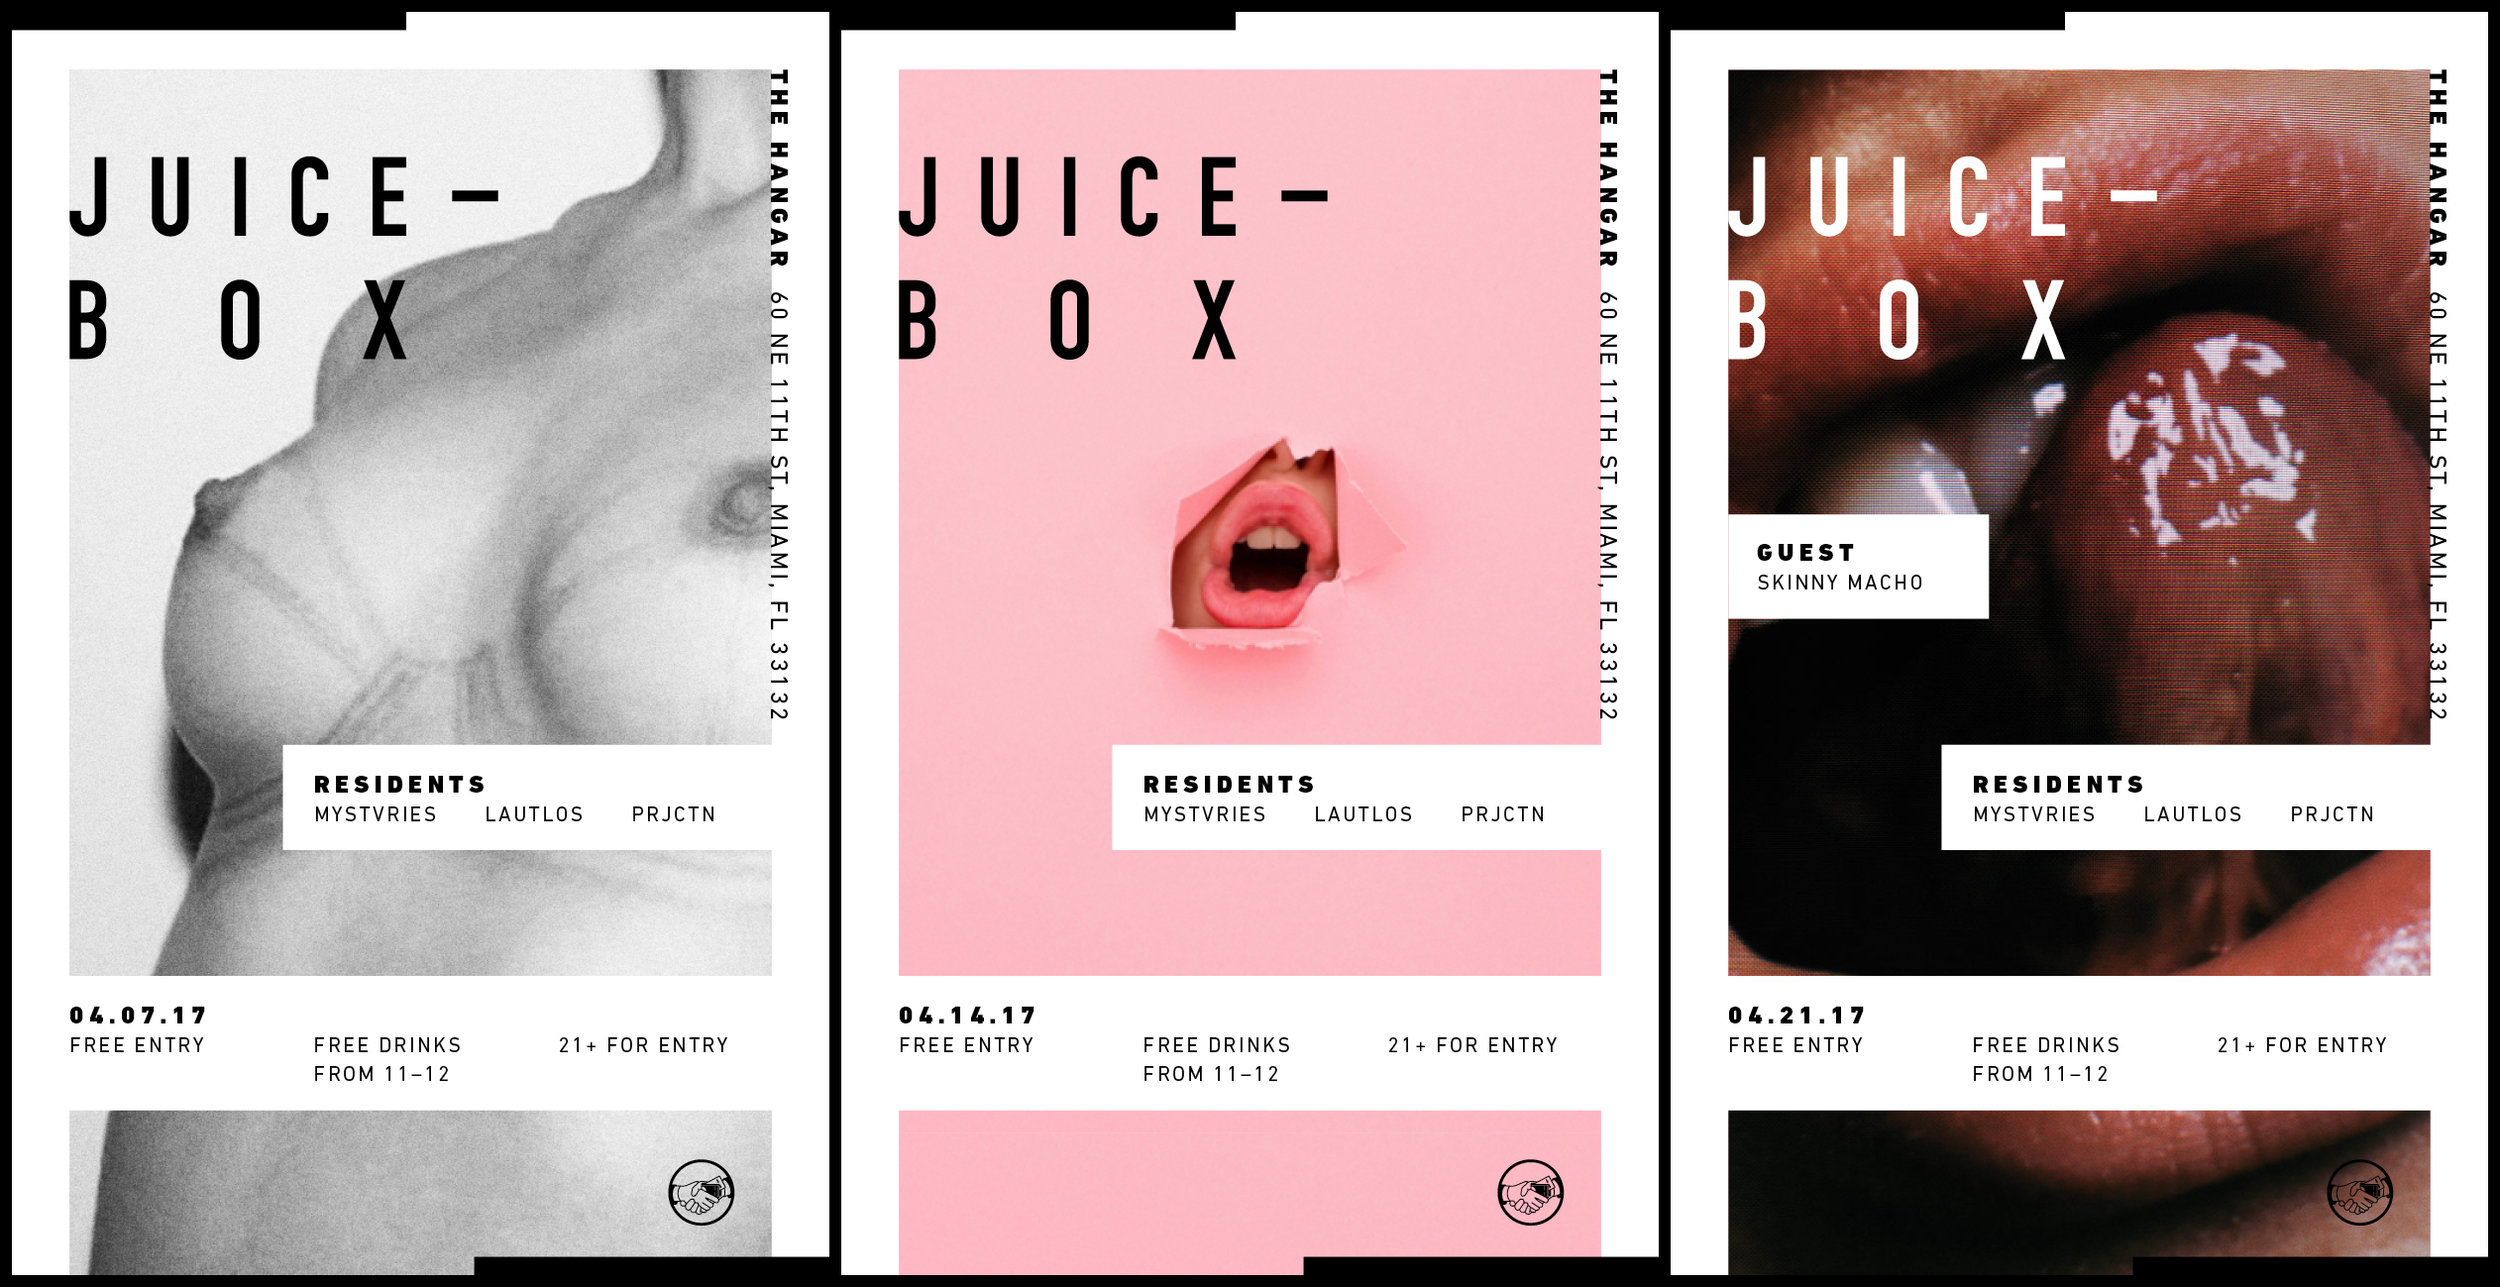 Juicebox promotional posters.